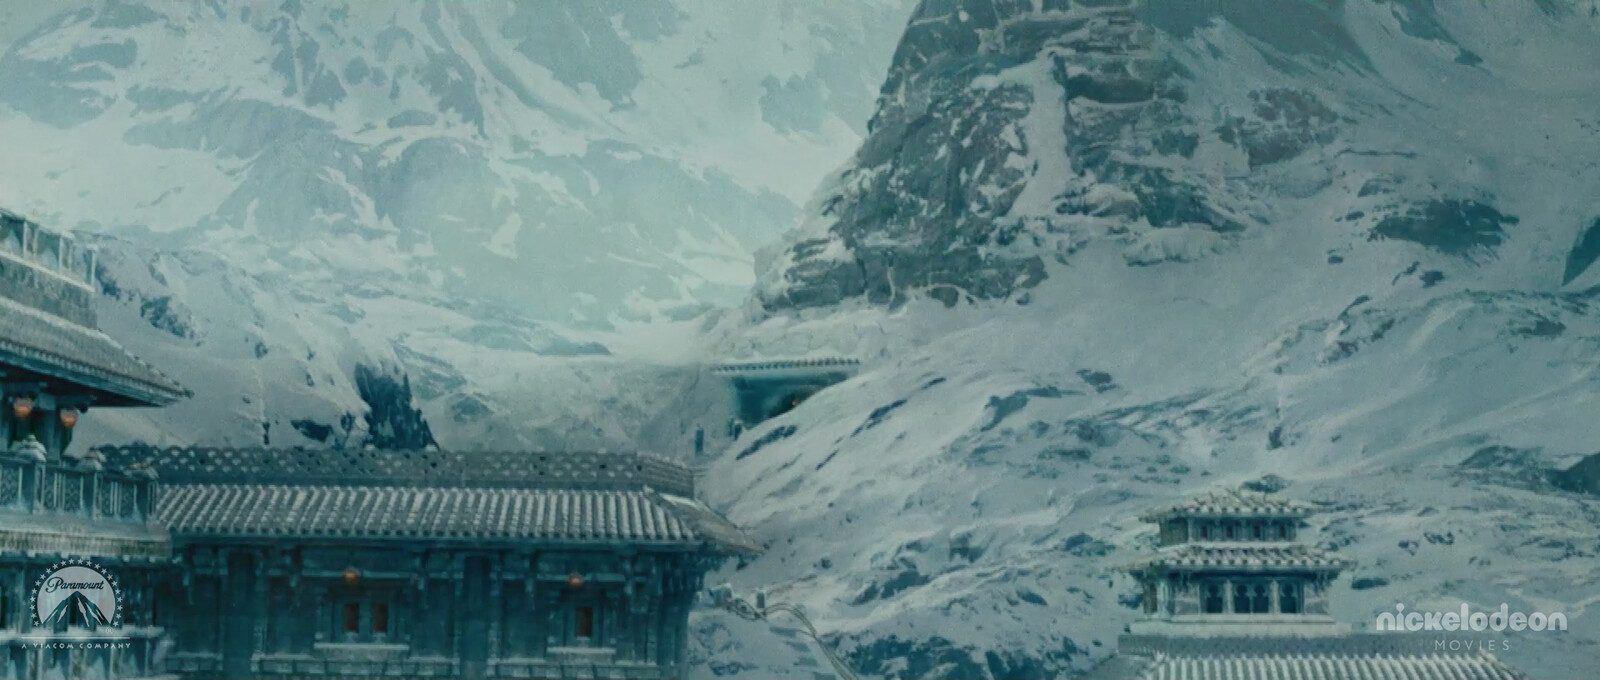 Set Extensions of the Northern Water Tribe City with BG Mountains. The city set piece is a collaboration of many Digital Matte Painters.